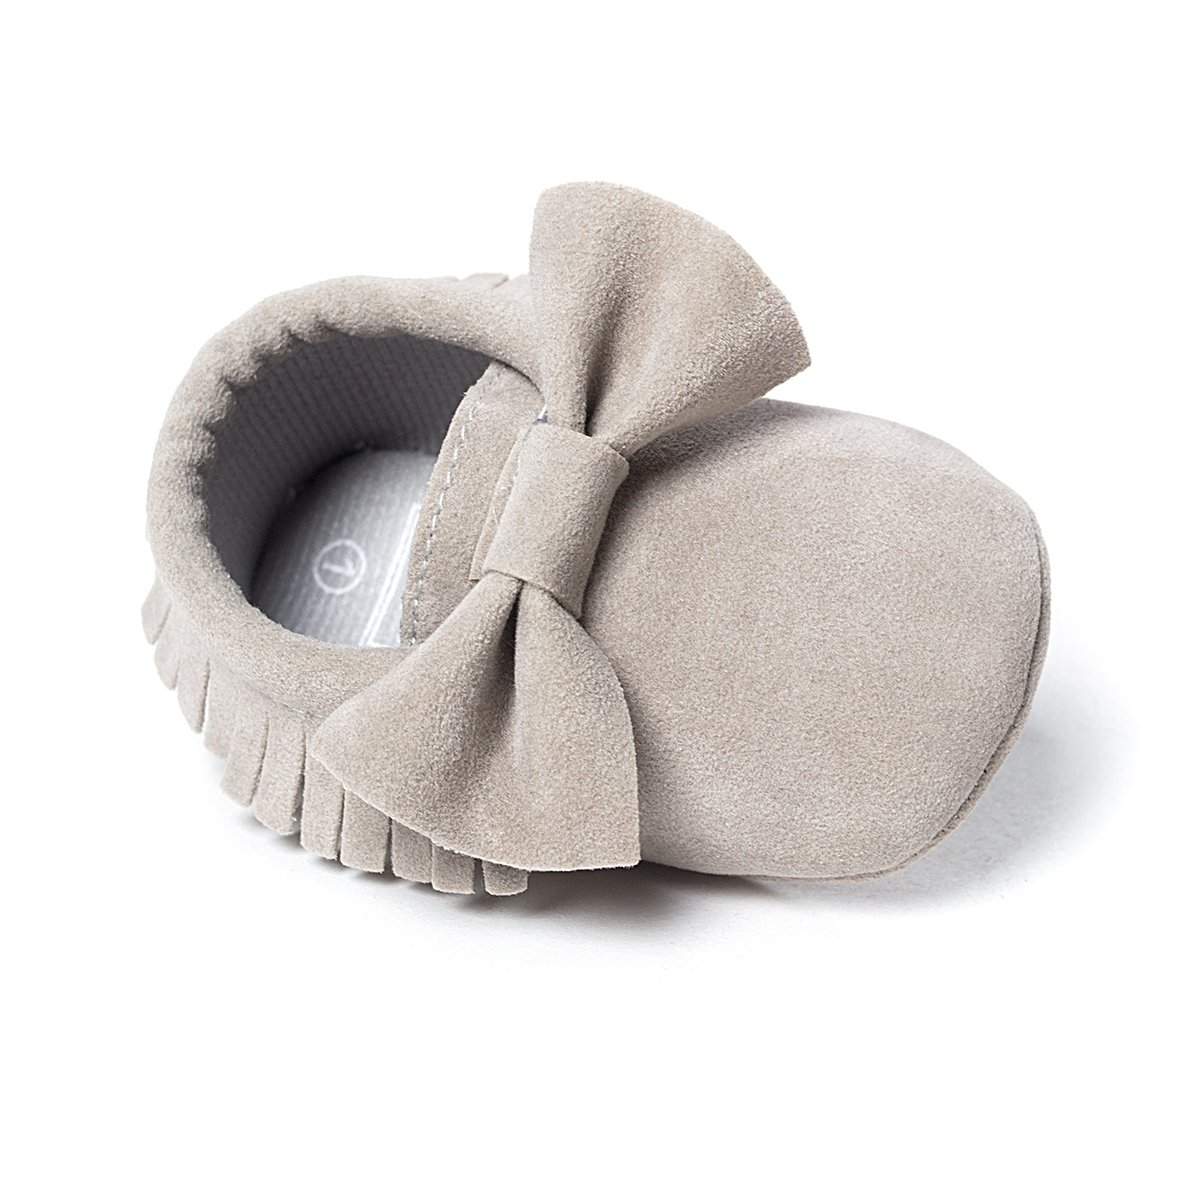 LIVEBOX Infant Baby Girls and Boys Premium Soft Sole Moccasins Tassels Prewalker Anti-Slip Toddler Shoes (S: 0~6 Months, Bow-Light Grey) by LIVEBOX (Image #1)